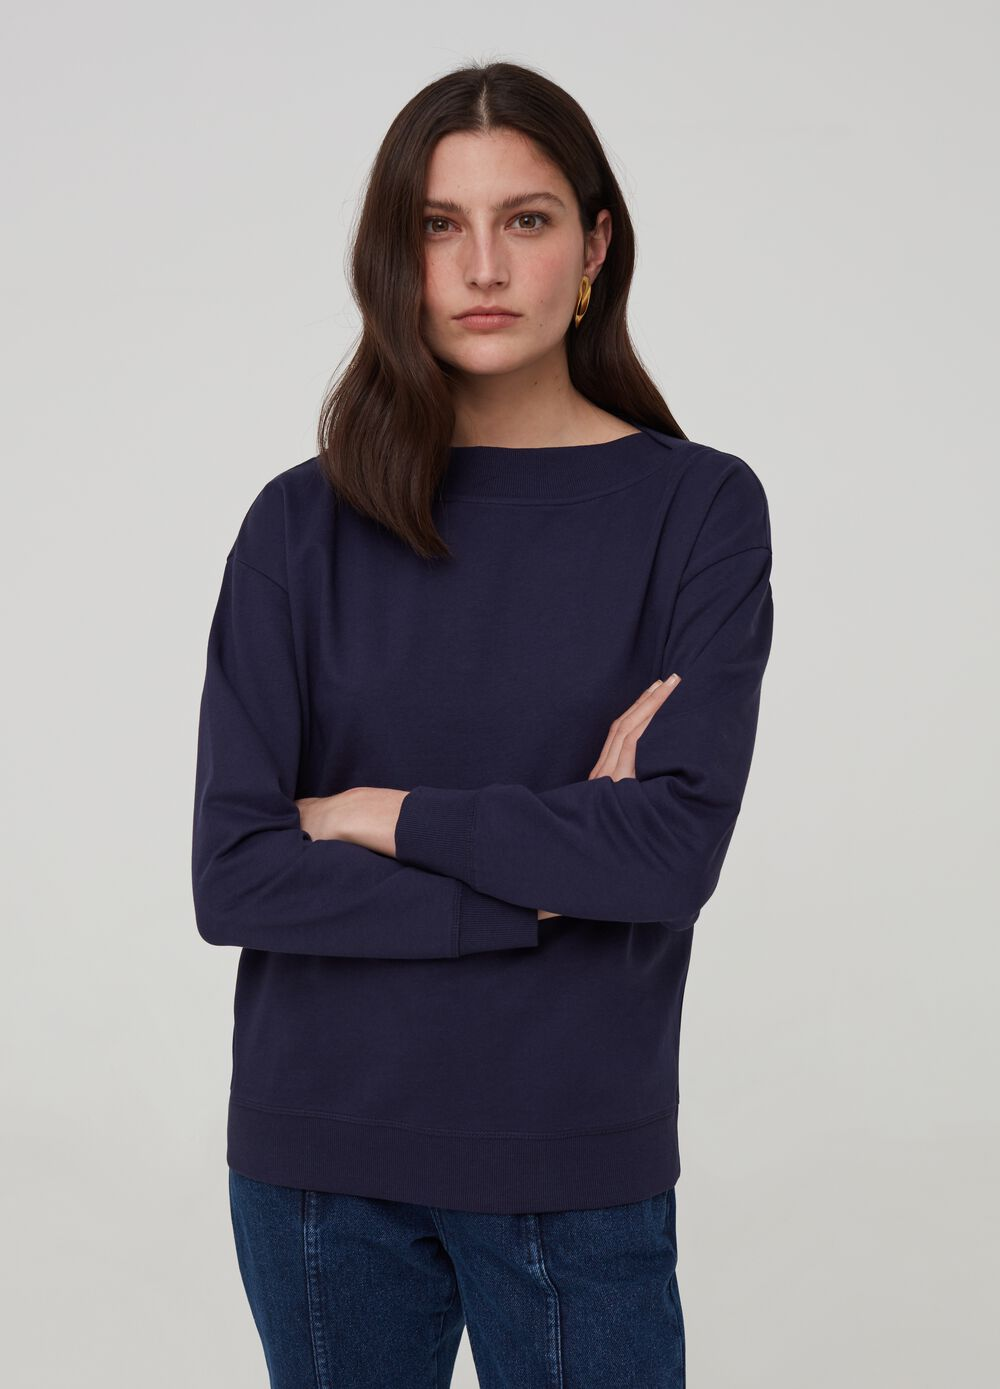 Sweatshirt with boat neck in 100% organic cotton